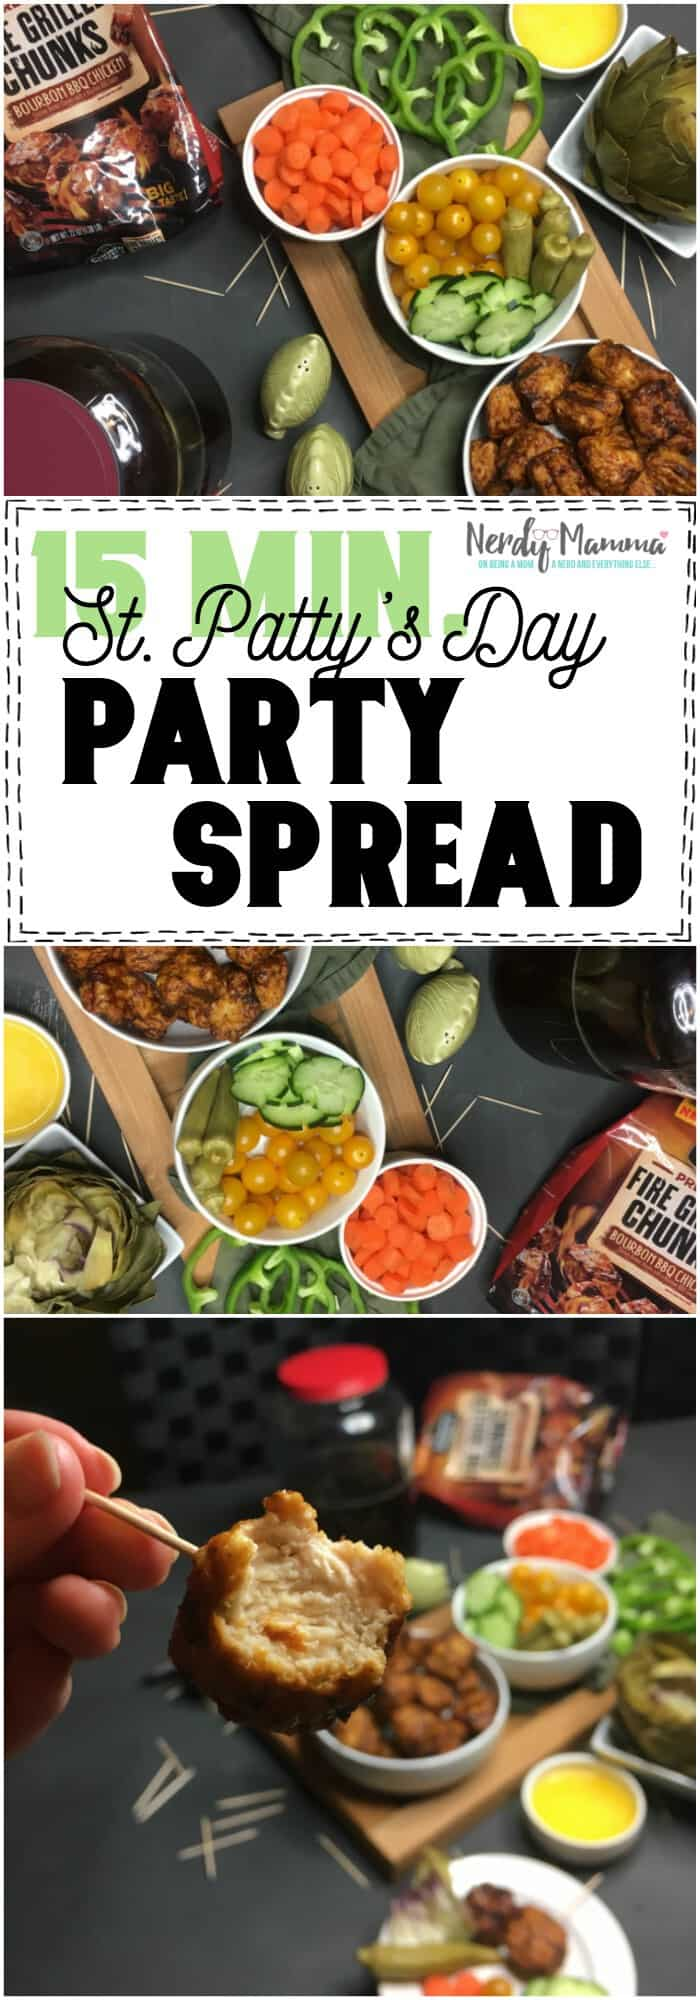 st. patty's day party spread